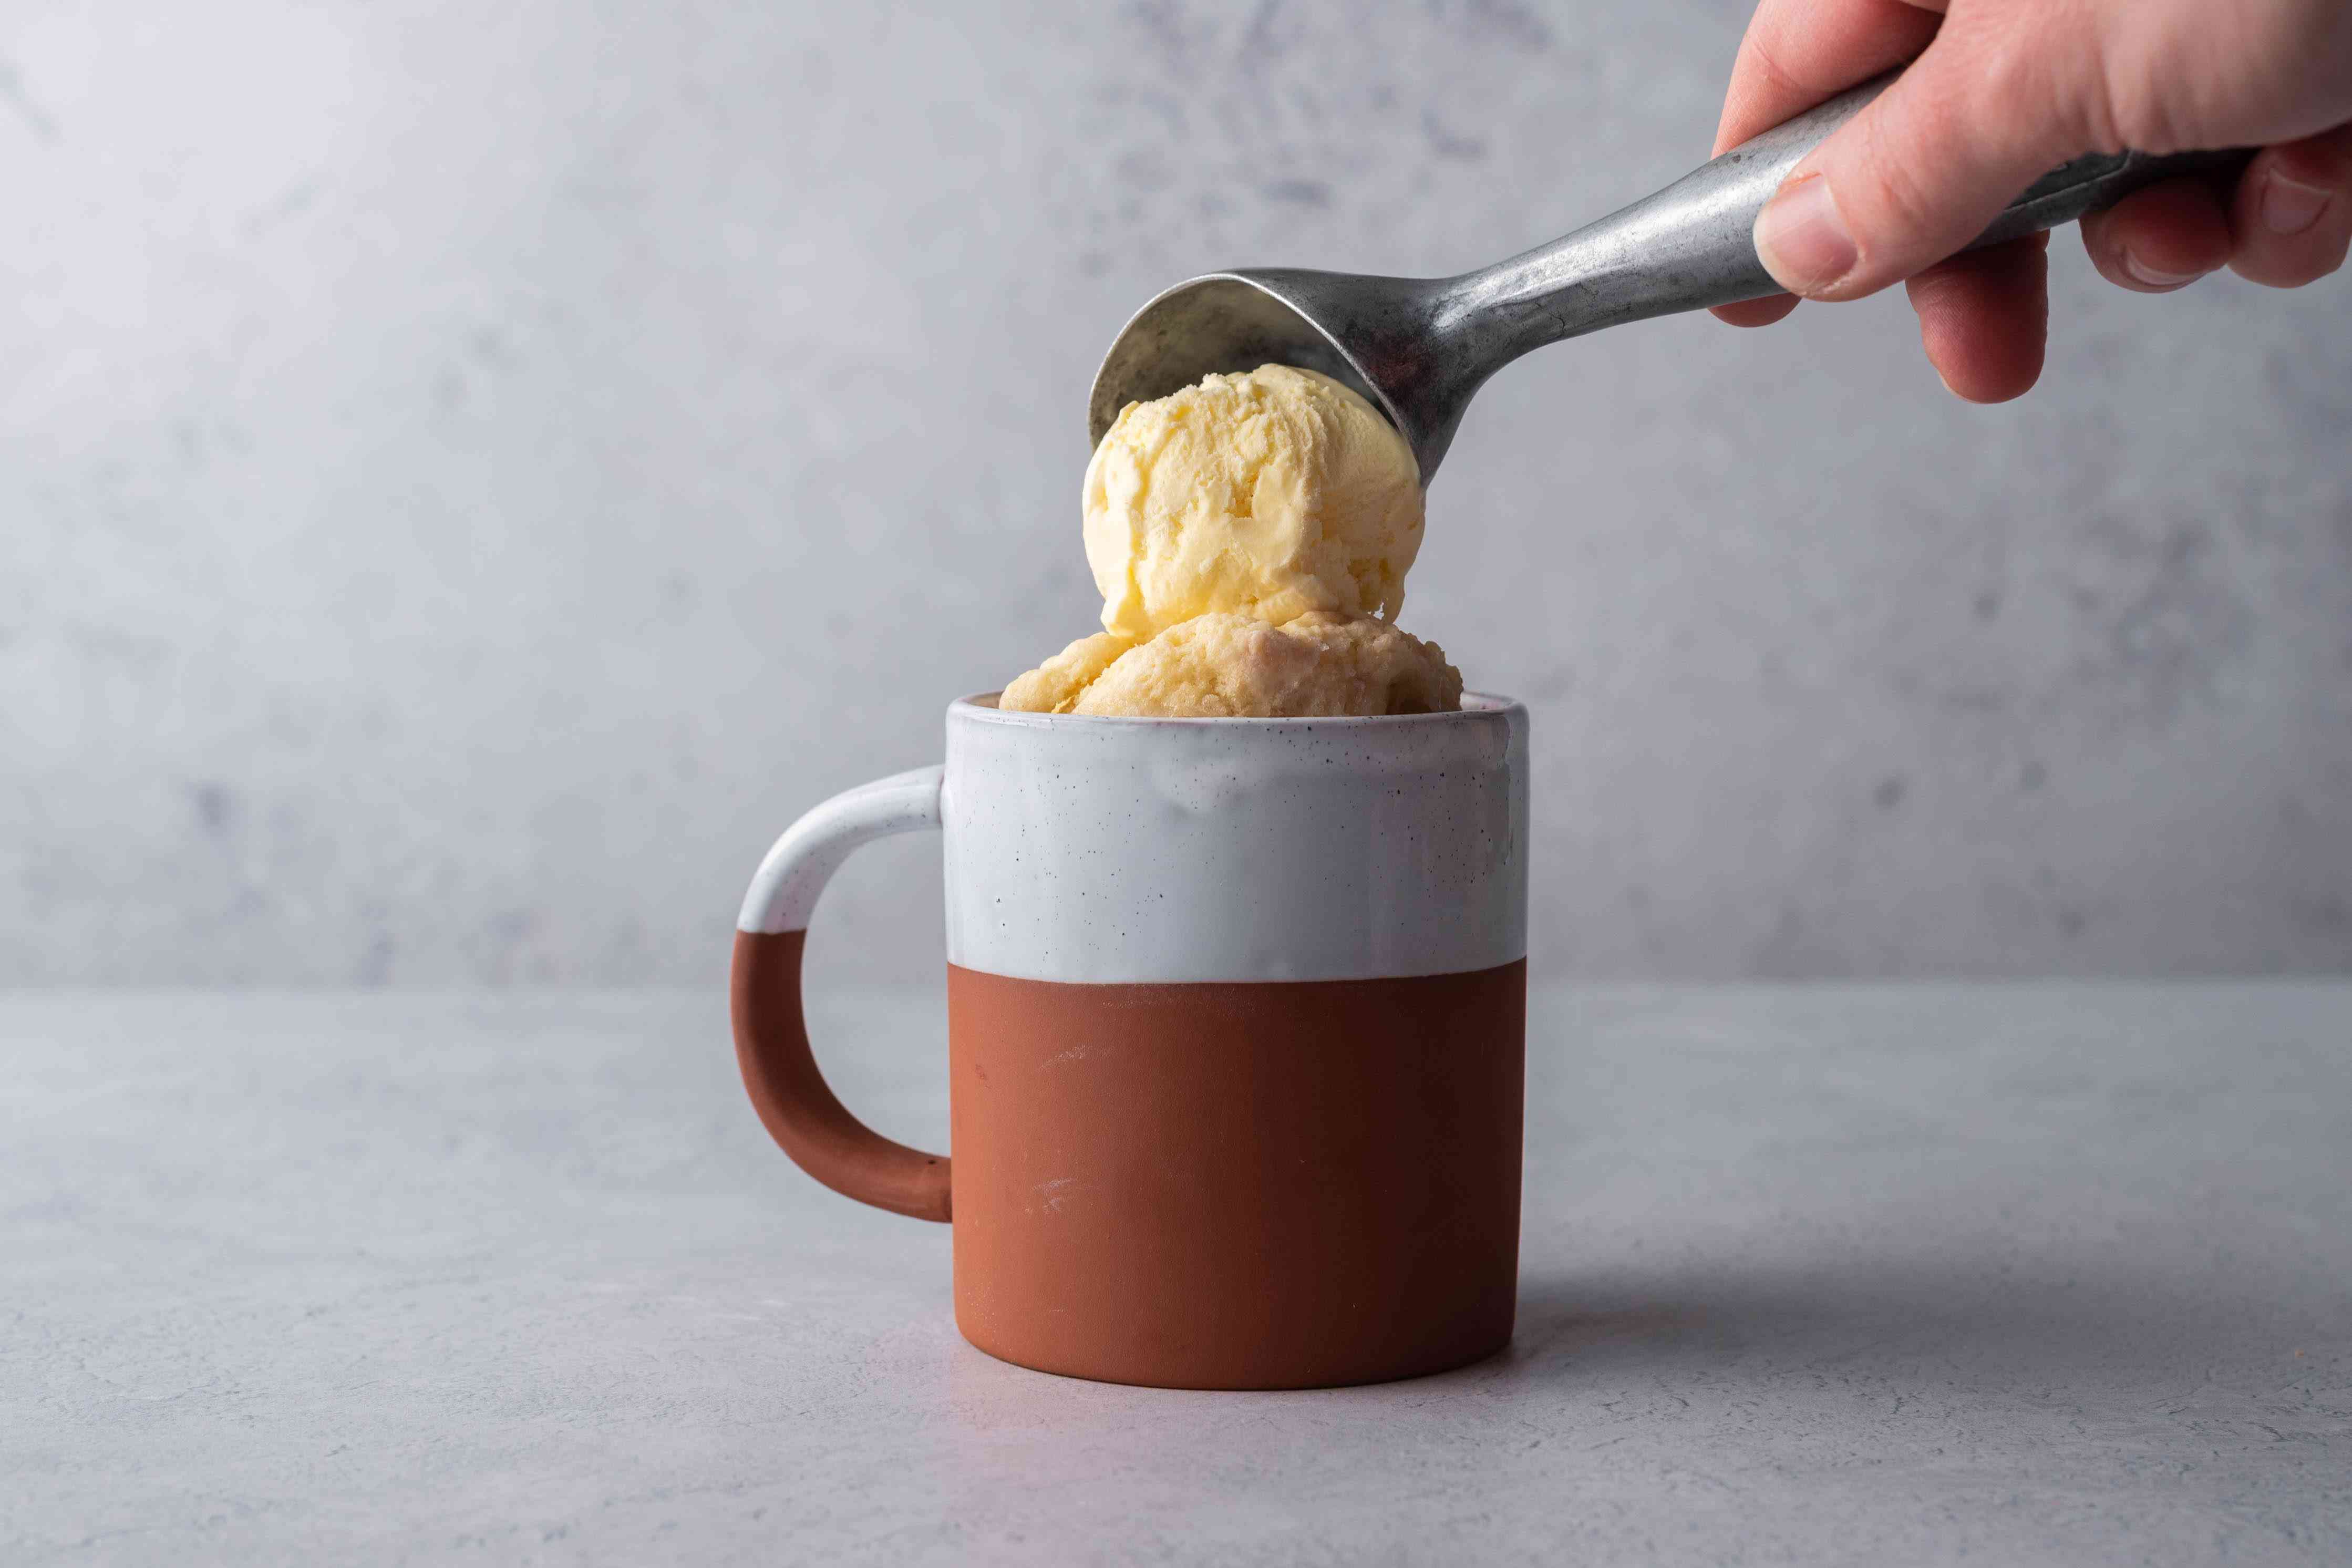 ice cream being placed on top of mug pie